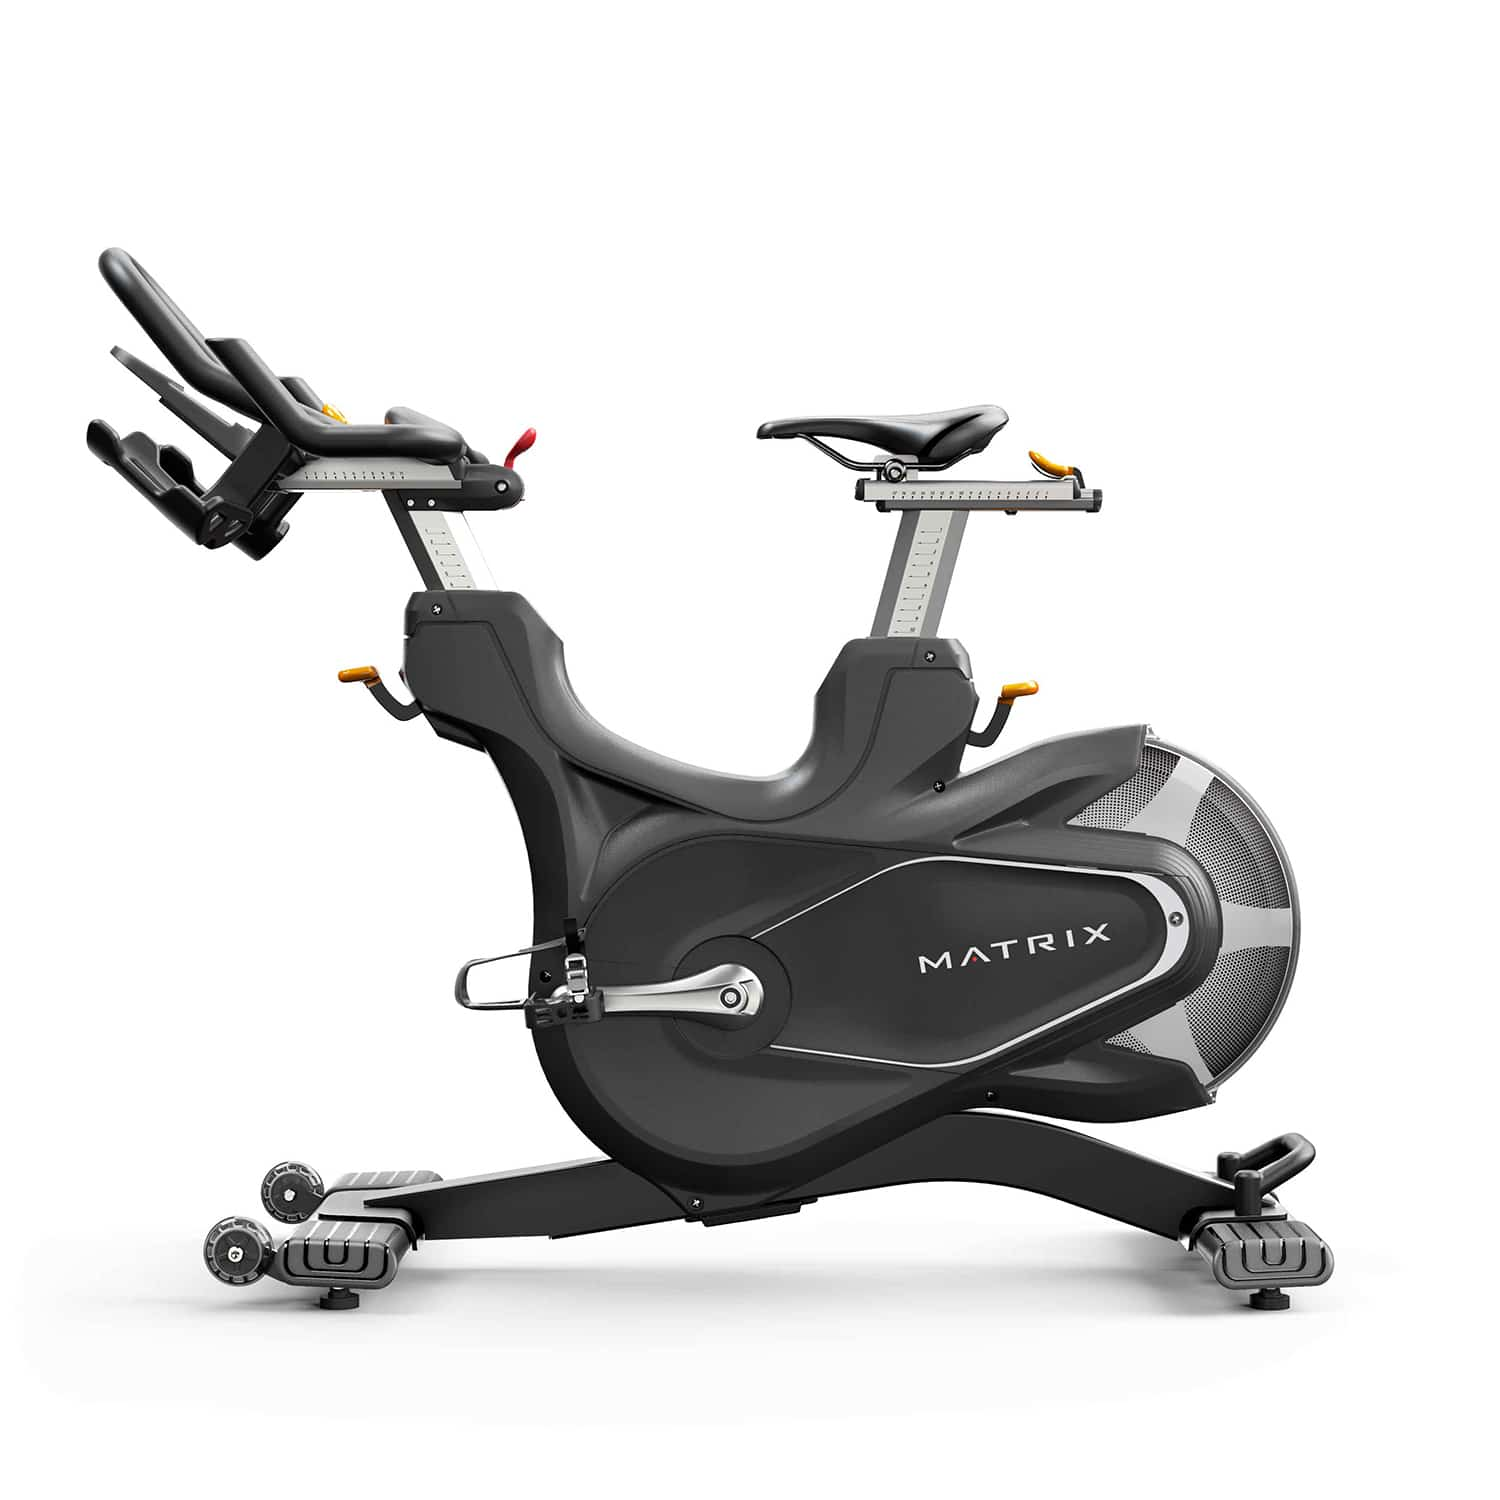 MX18_CXC indoor cycle detail_profile_lores